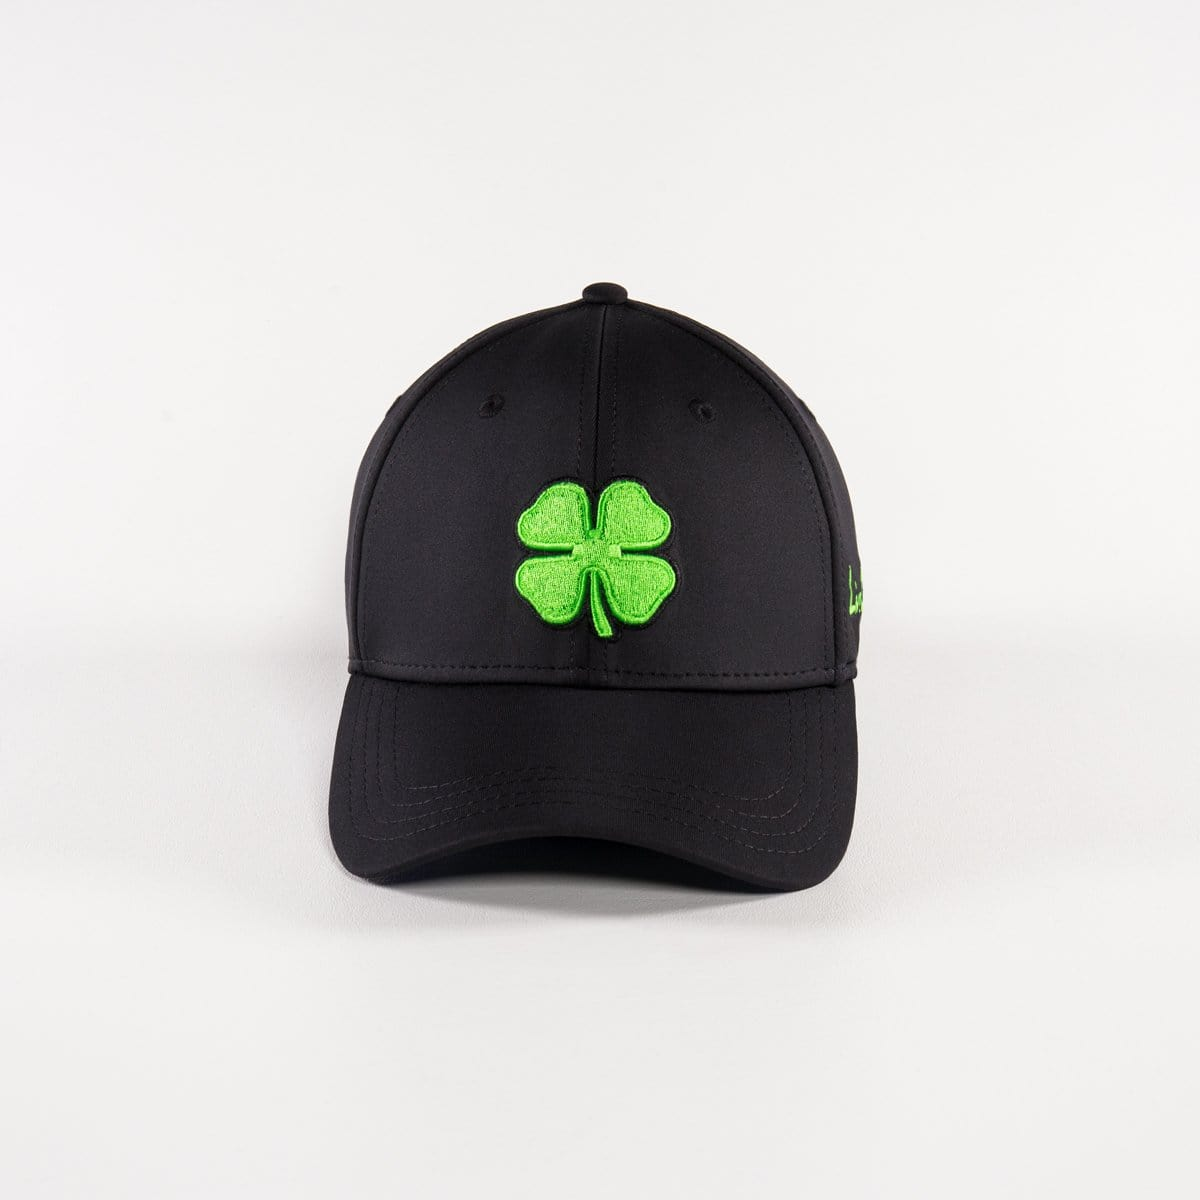 Black Clover Baseball Caps Premium Clover 51 equestrian team apparel online tack store mobile tack store custom farm apparel custom show stable clothing equestrian lifestyle horse show clothing riding clothes horses equestrian tack store